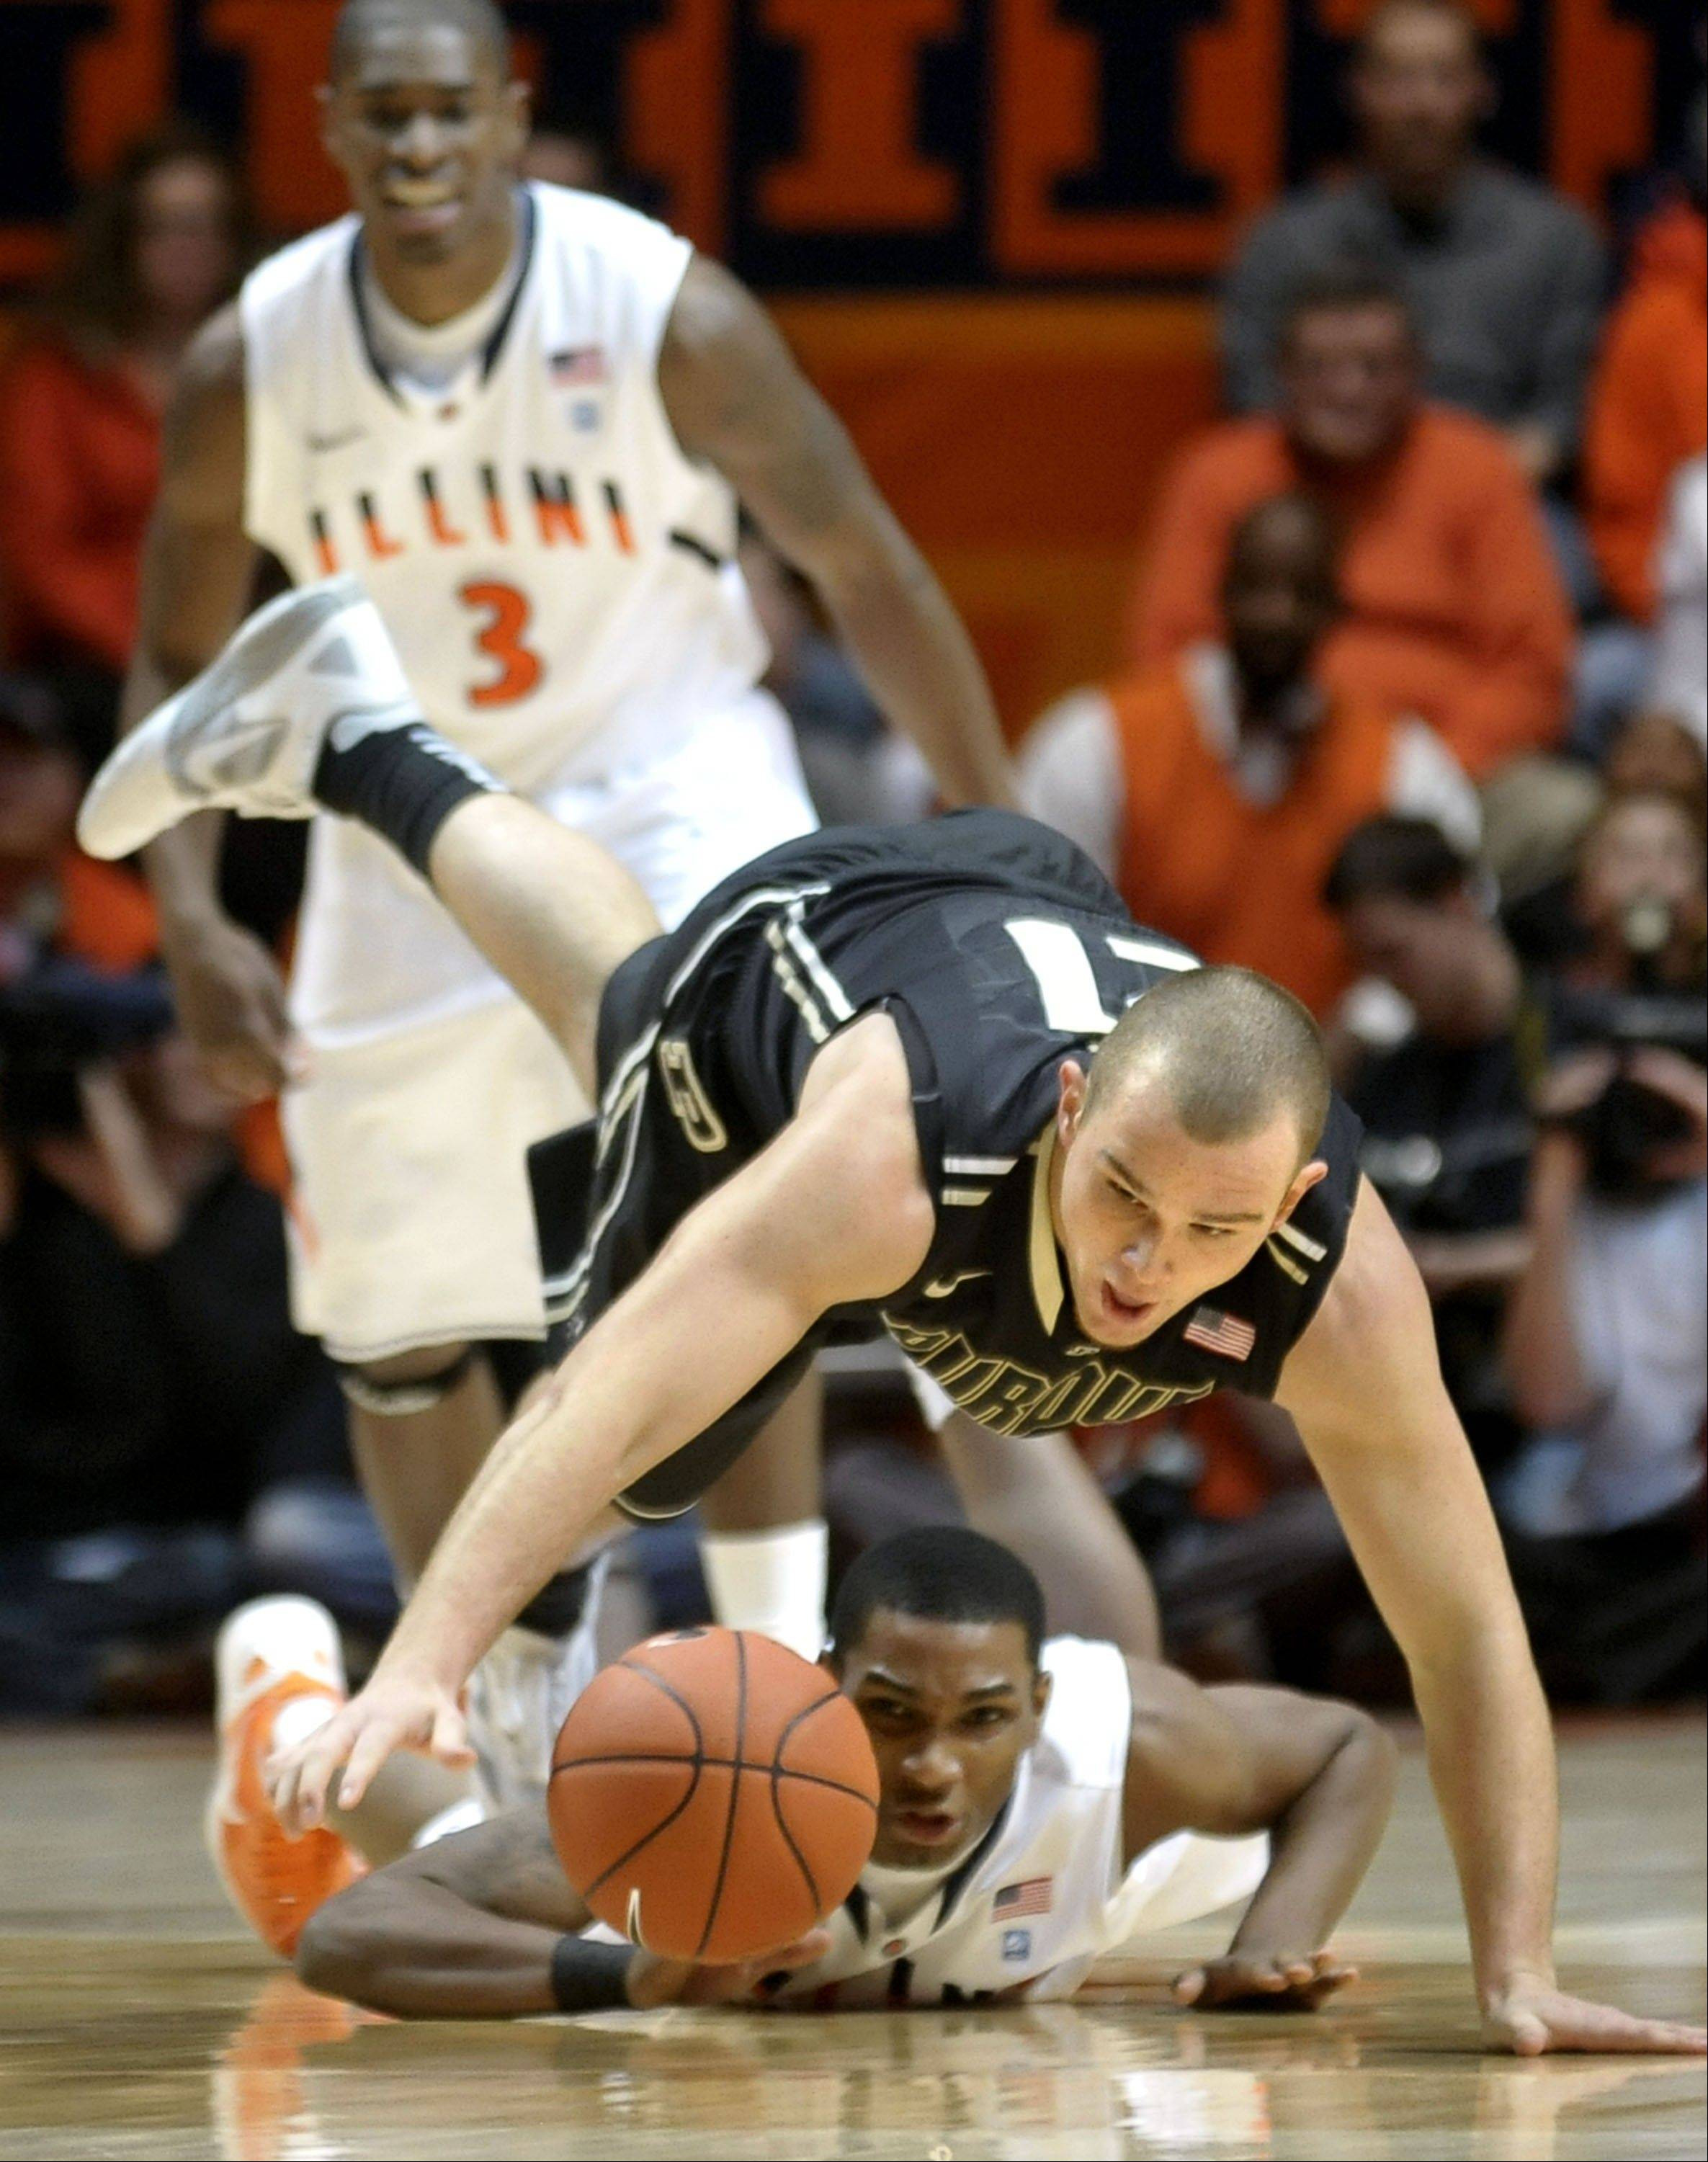 Purdue's D.J. Byrd and Illinois' Tracy Abrams struggle for a loose ball in a Feb. 15 game at Assembly Hall in Champaign last season. Byrd, a 6-foot-5, 228-pound senior, is expected to spend most of his time this season at his more natural swing spot.